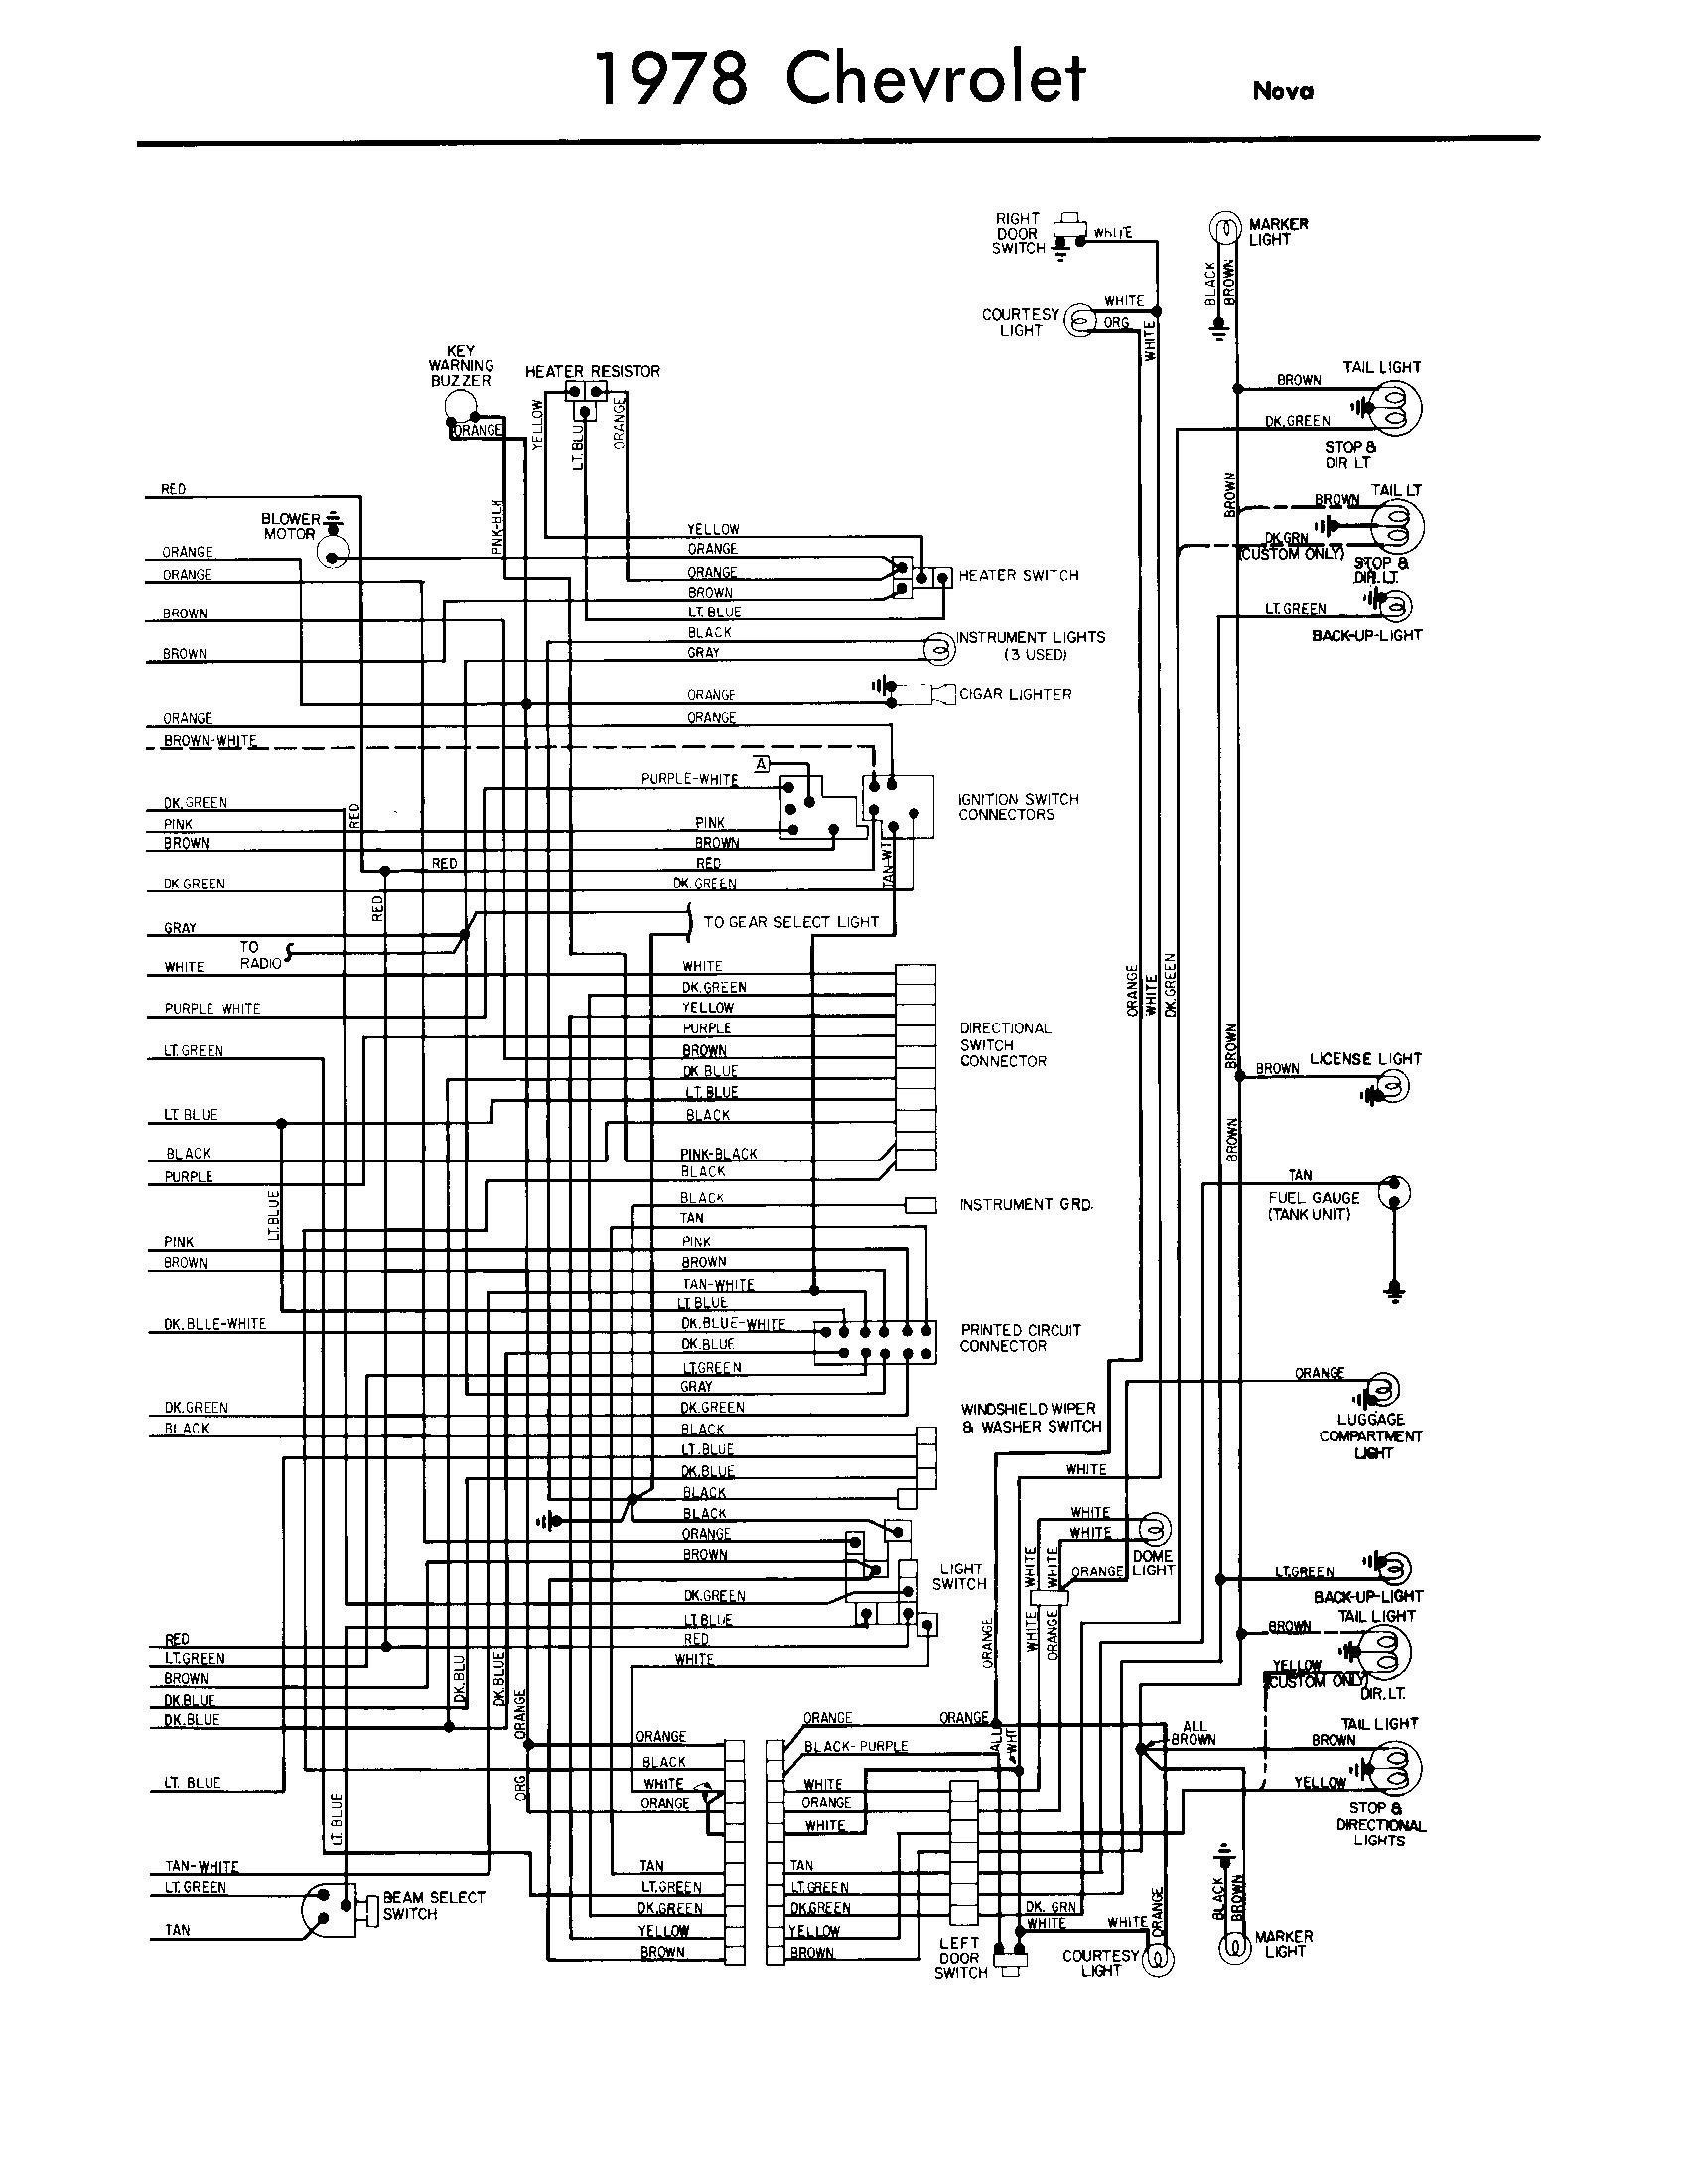 1969 Chevy Starter Wiring | Manual E-Books - Chevy Starter Wiring Diagram